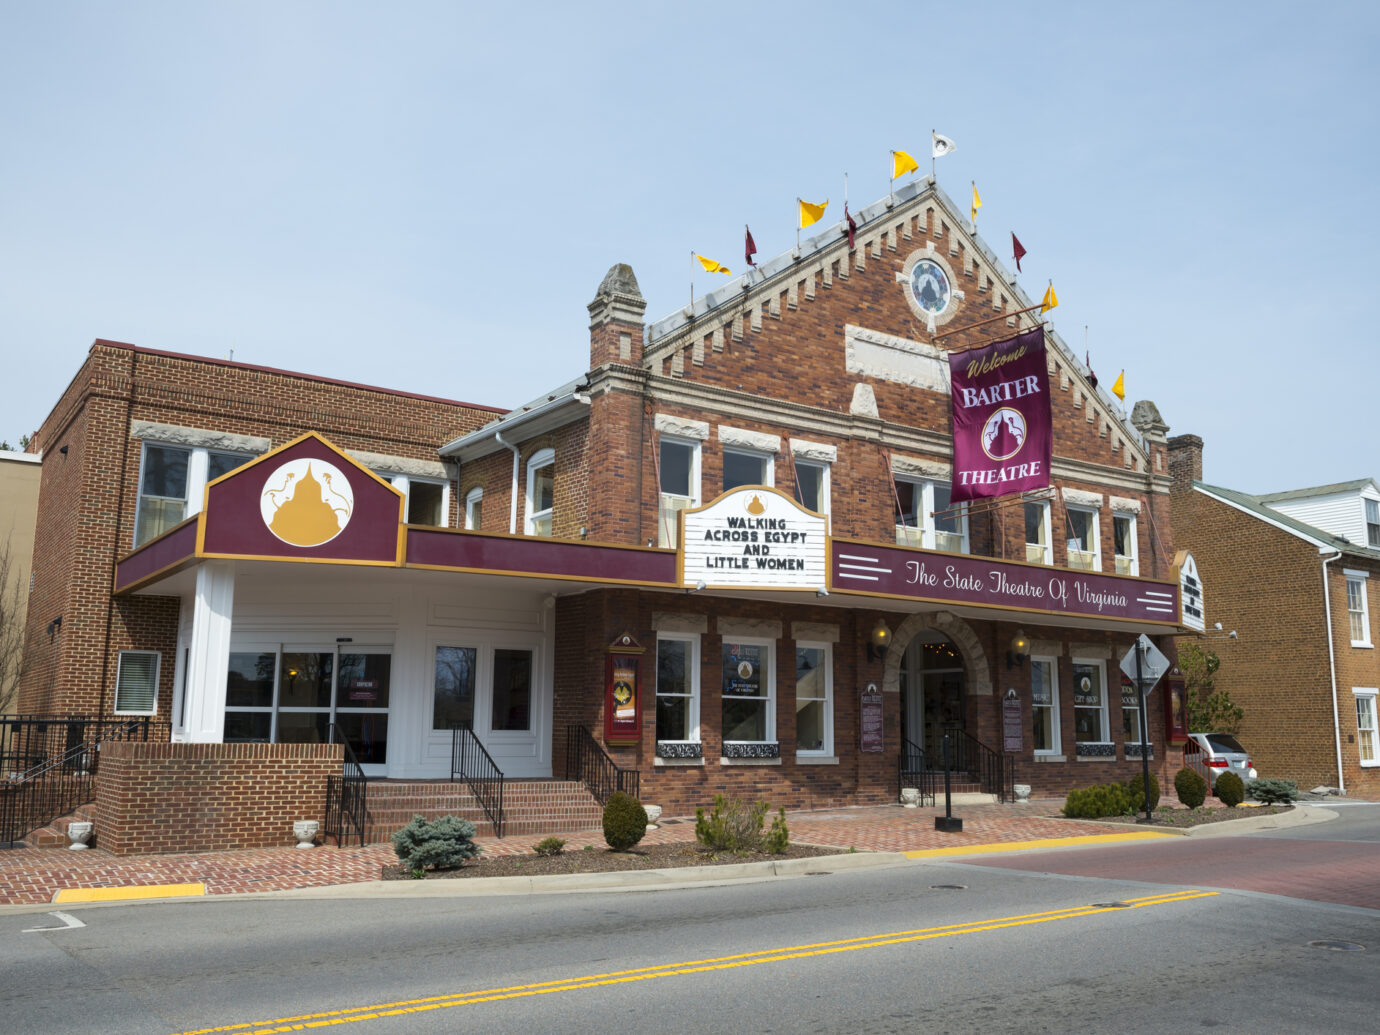 """Barter Theatre, which opened in 1933, is one of the longest running professional theaters in the United States. On this particular day it was performing """"Walking Across Egypt"""" and """"Little Women"""""""